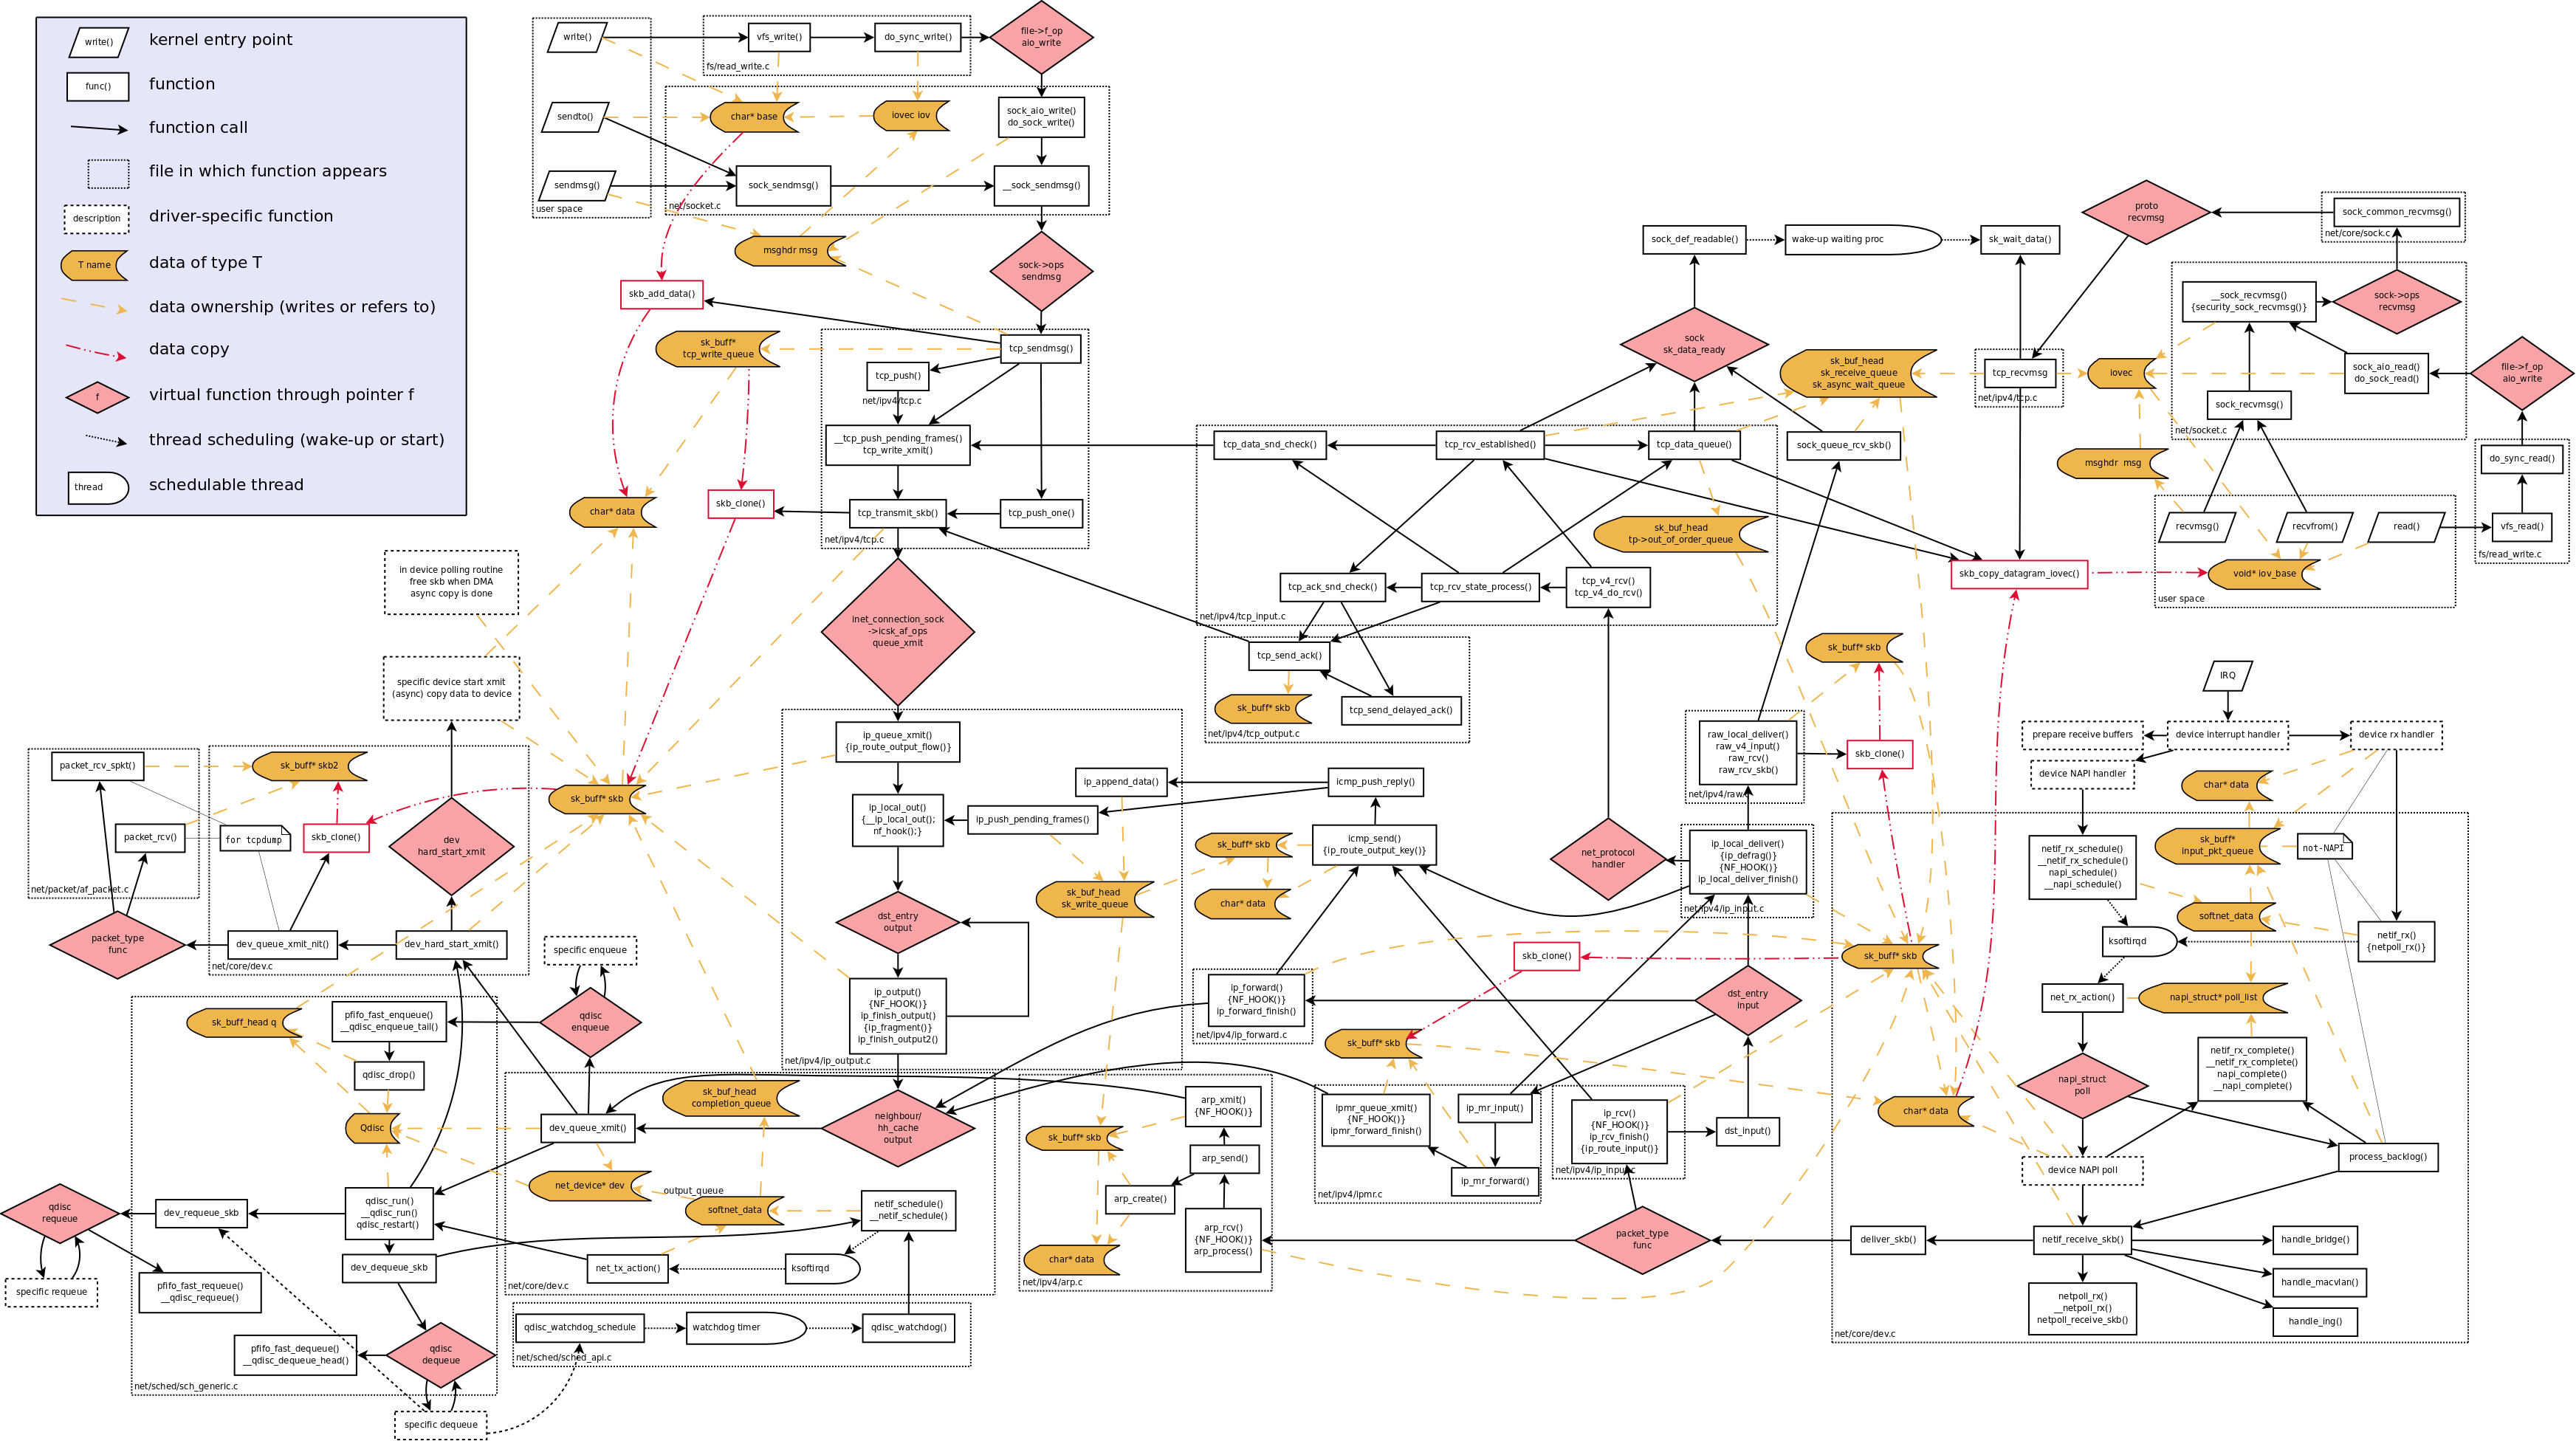 Linux flow diagram library of wiring diagram network data flow through kernel png 3489 1952 tech pinterest rh pinterest com au linux flow diagram tool linux flow chart creator ccuart Gallery